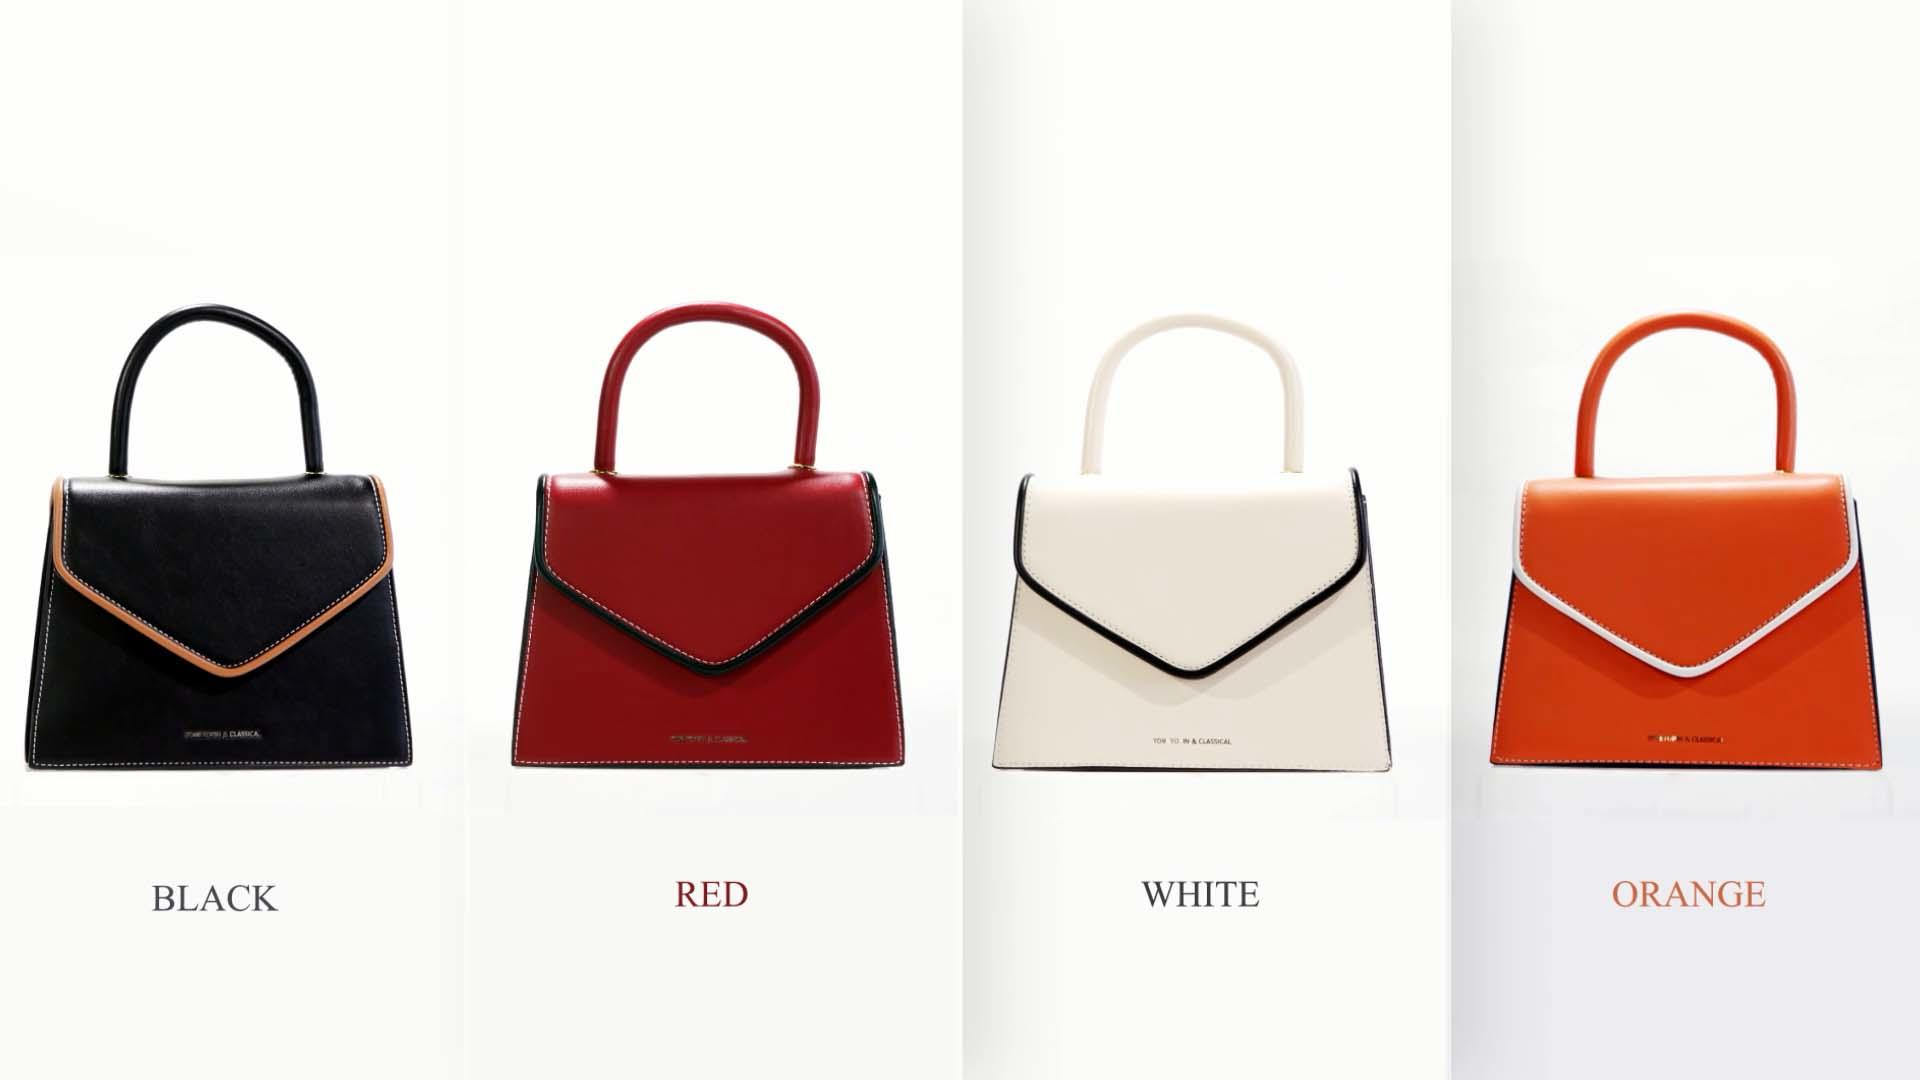 JIYALI manufacturer specializing in the production and processing of ladies bag  products